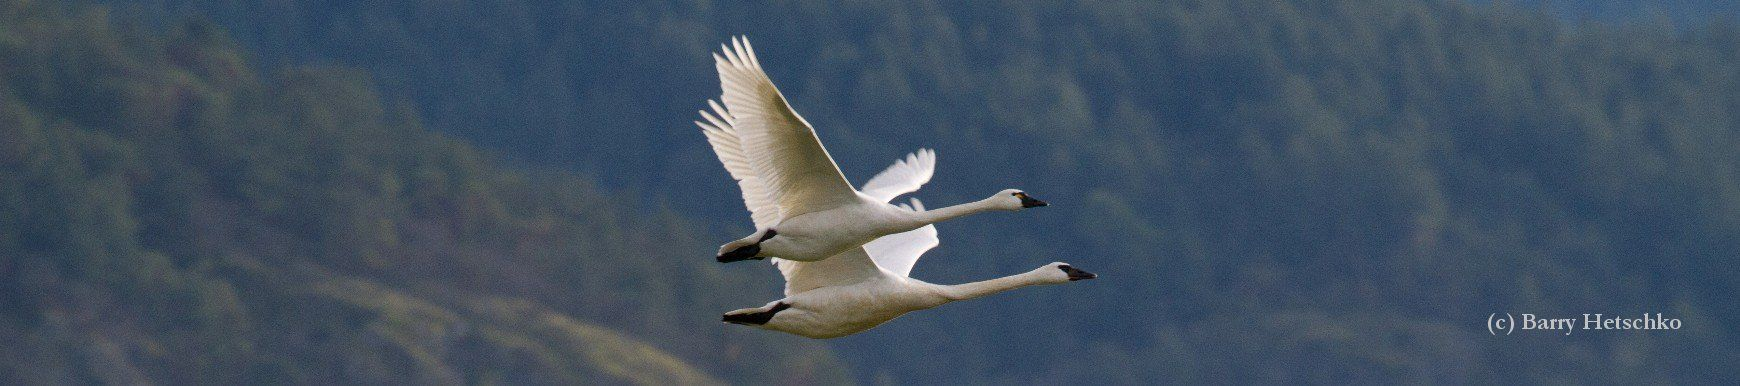 Trumpeter Swans and Tundra swans look much alike and differences can be seen when side by side